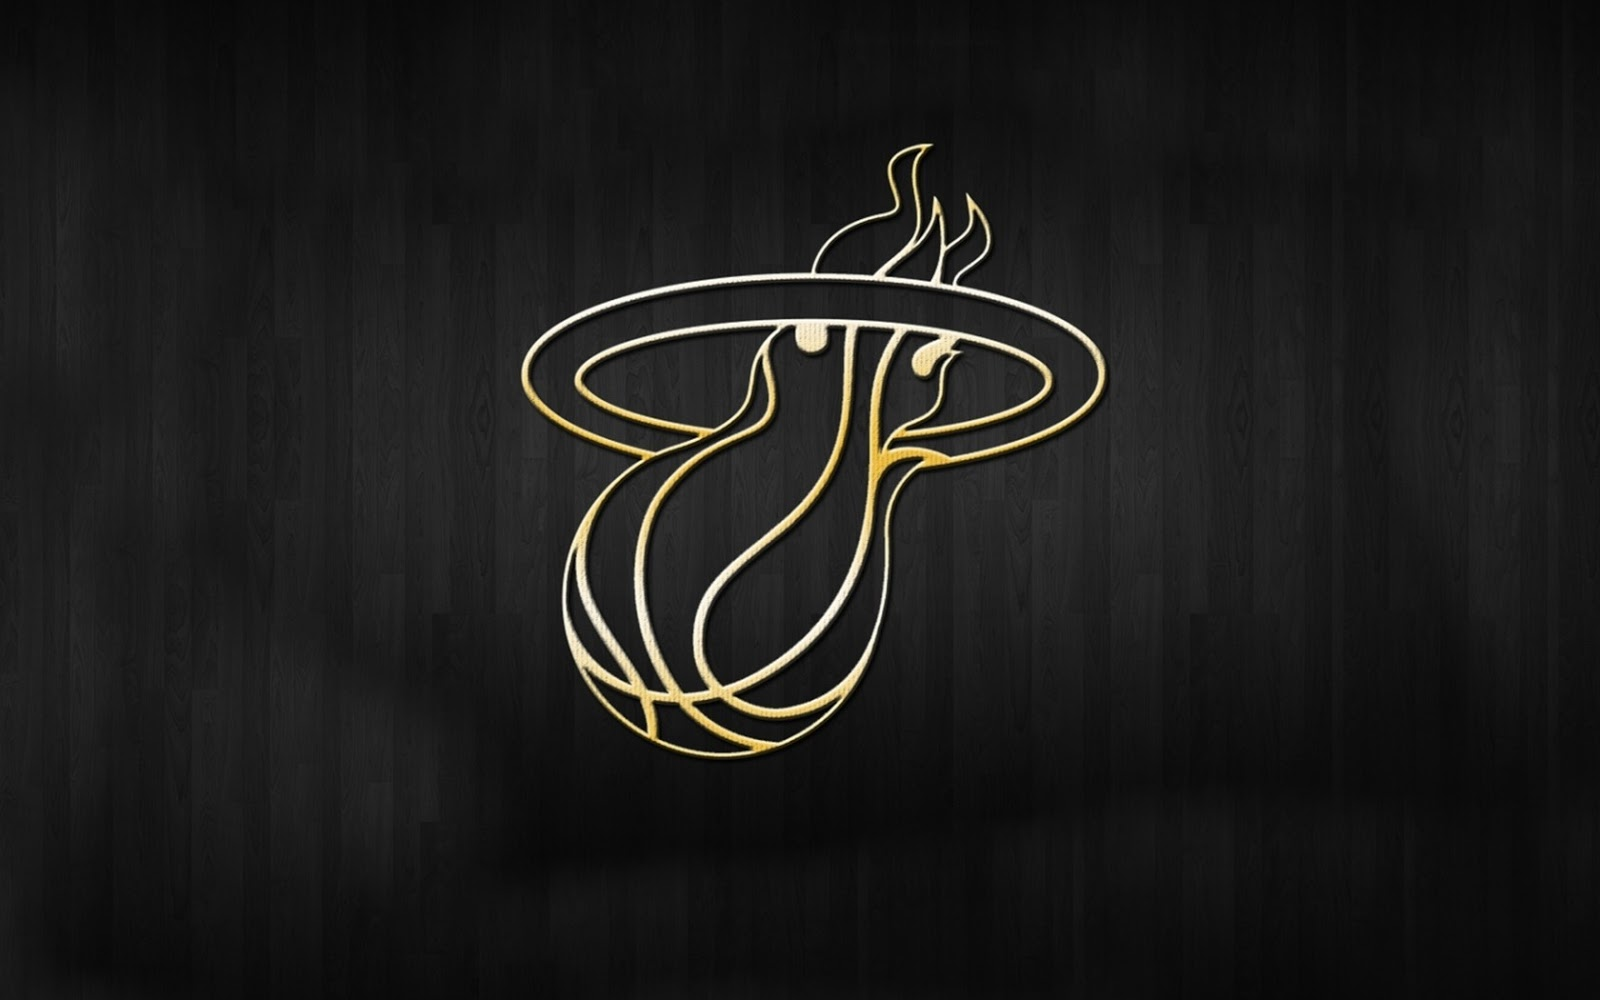 90] Miami Heat Background 2016 on WallpaperSafari 1600x1000